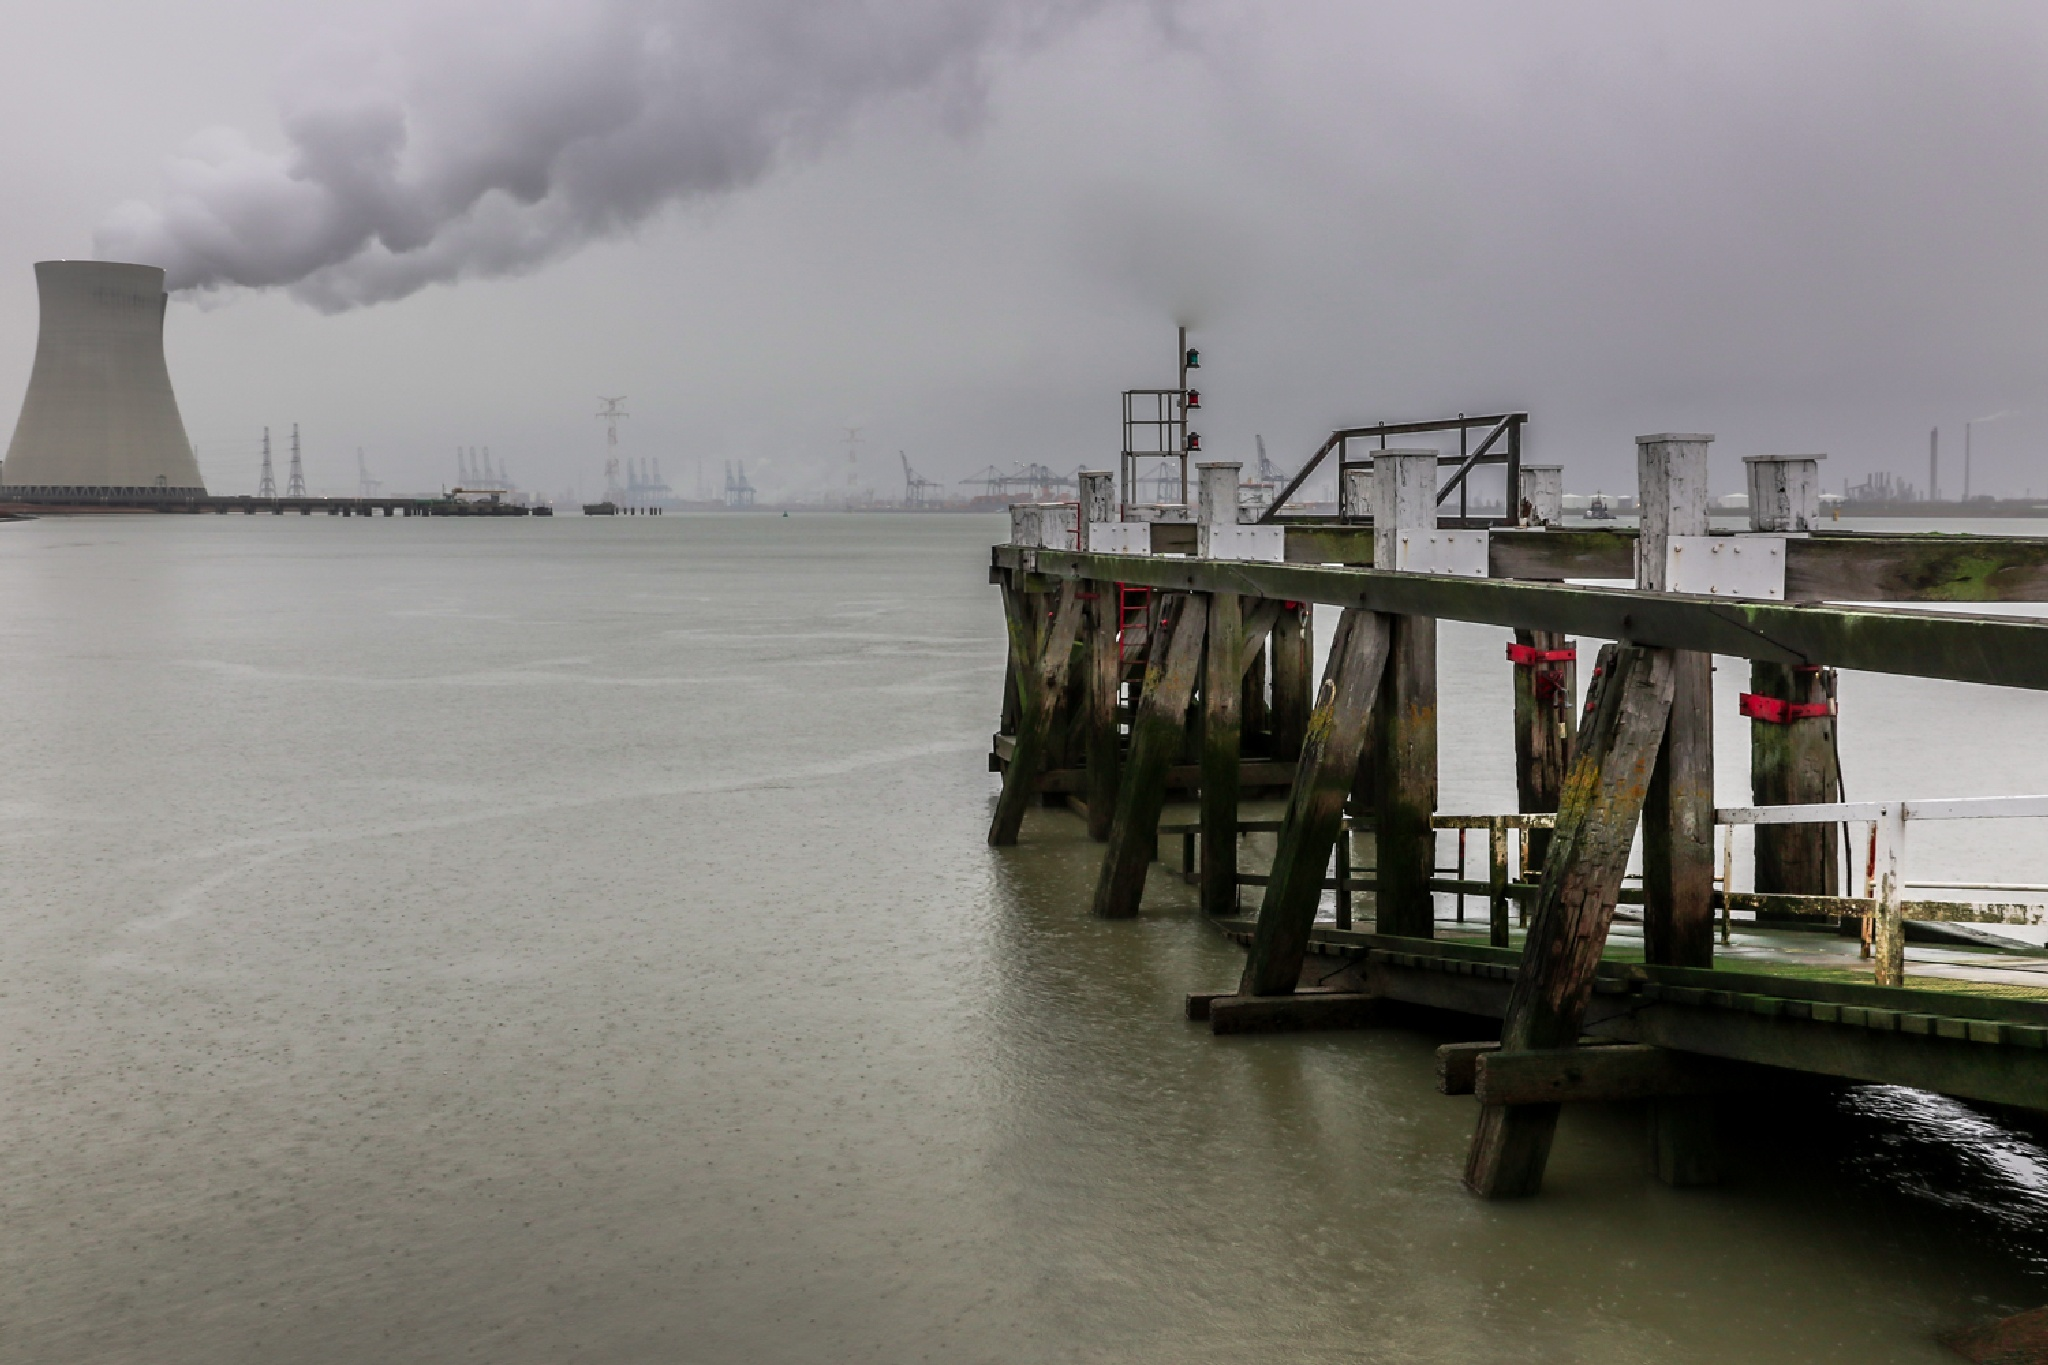 nuclear power station Doel Belgium by Ronny Andries